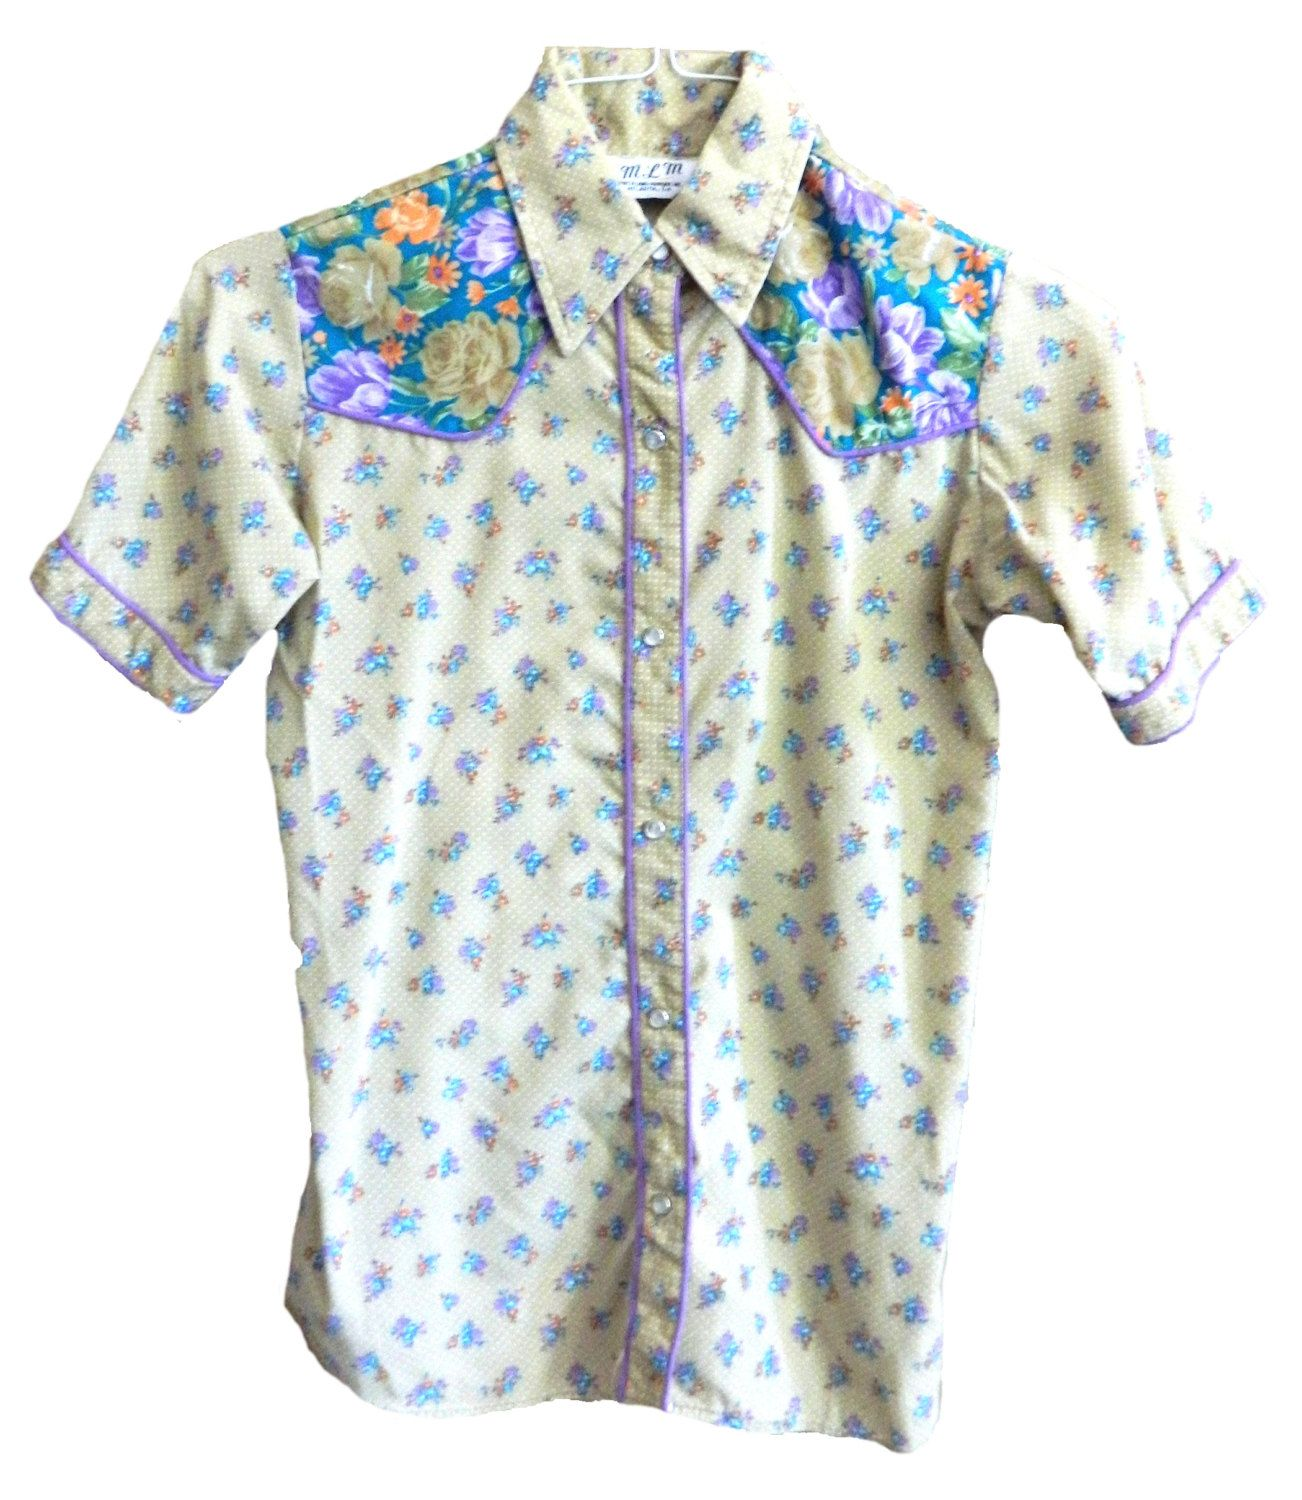 Vintage mens womens MLM Mayer Lang Marquis small collared button up short sleeve shirt purple western floral tapestry rose polka dot hipster by VELVETMETALVINTAGE on Etsy